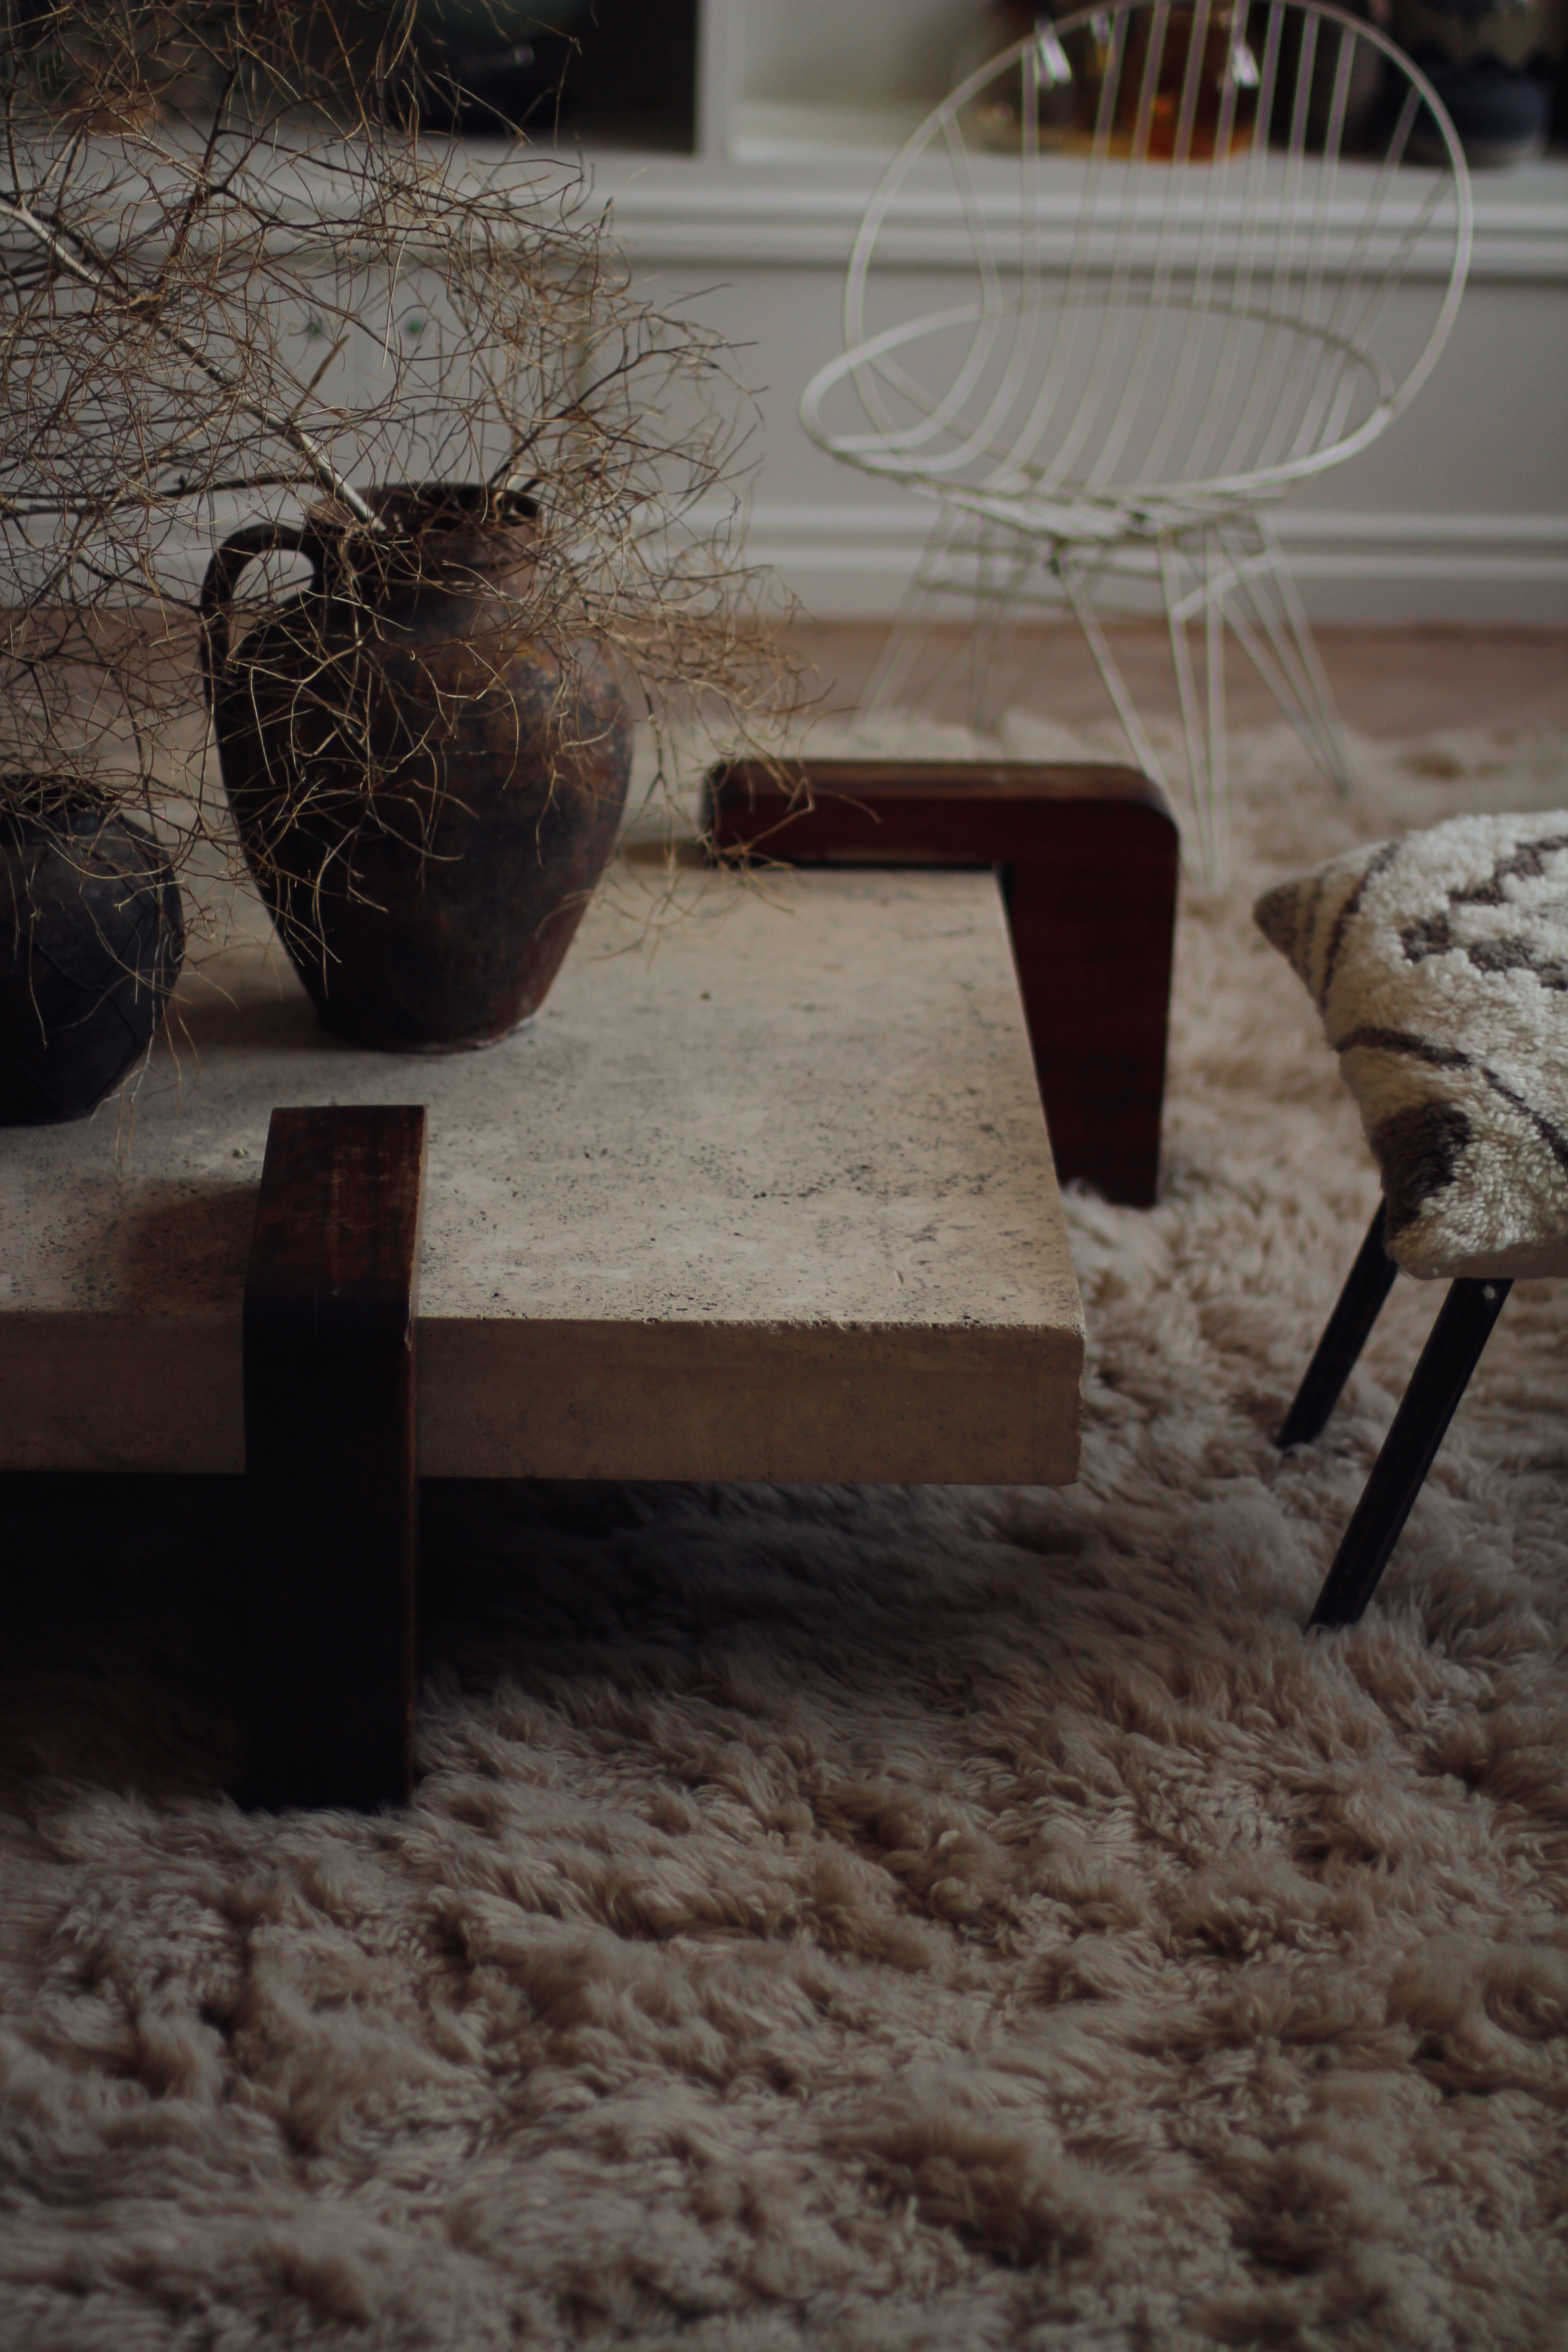 Shaggy Rug Oatmeal with chair and moderoriental pillow in living room by Malin Persson